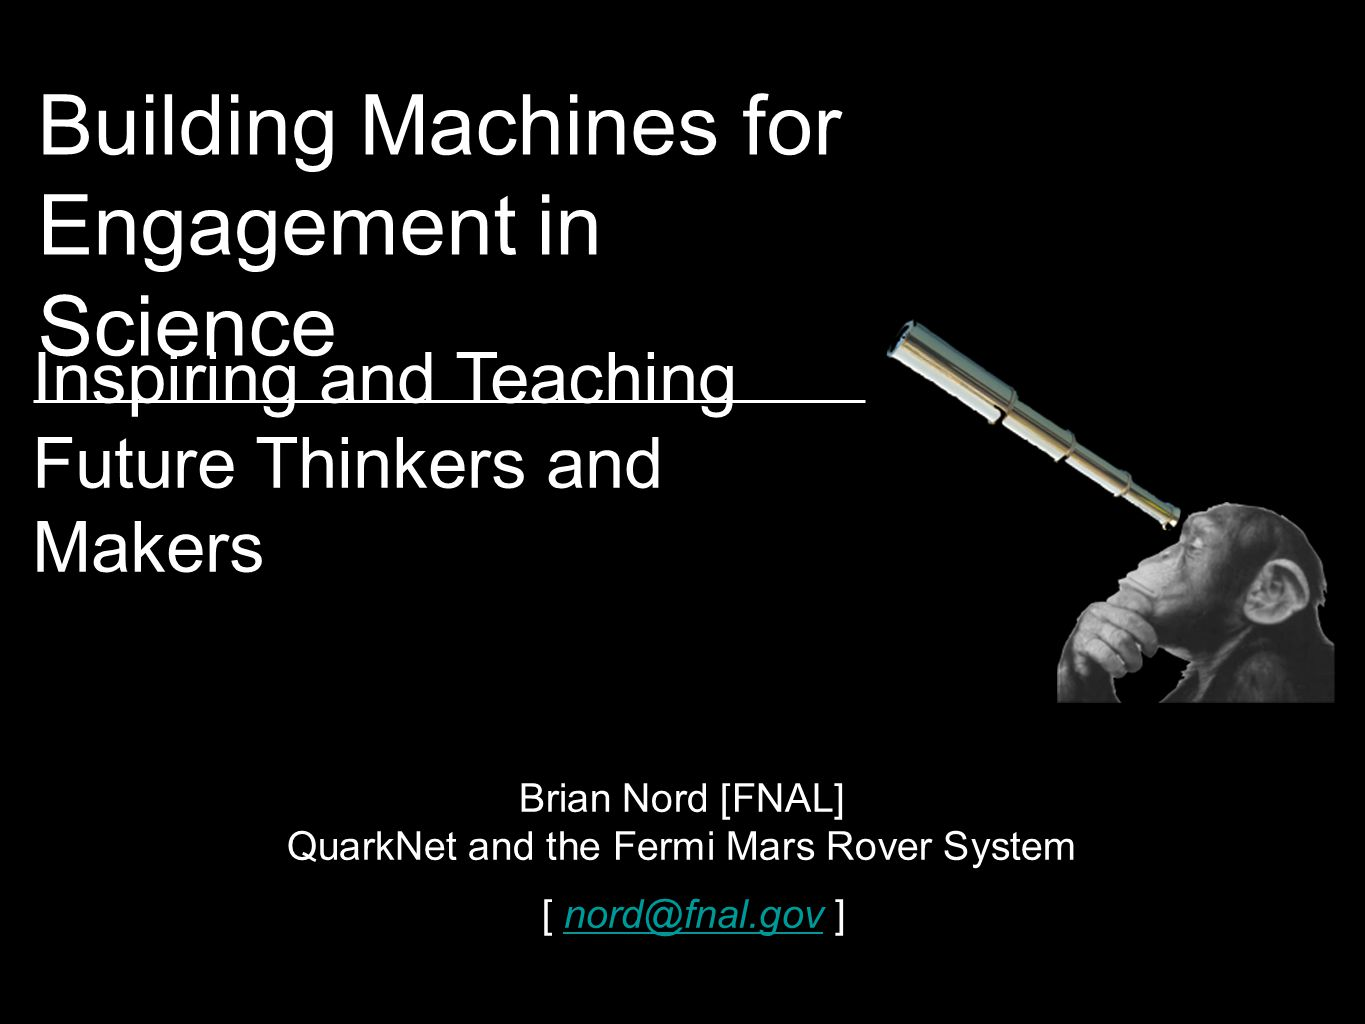 Building Machines for Engagement in Science Brian Nord [FNAL] QuarkNet and the Fermi Mars Rover System [ nord@fnal.gov ]nord@fnal.gov Inspiring and Teaching Future Thinkers and Makers